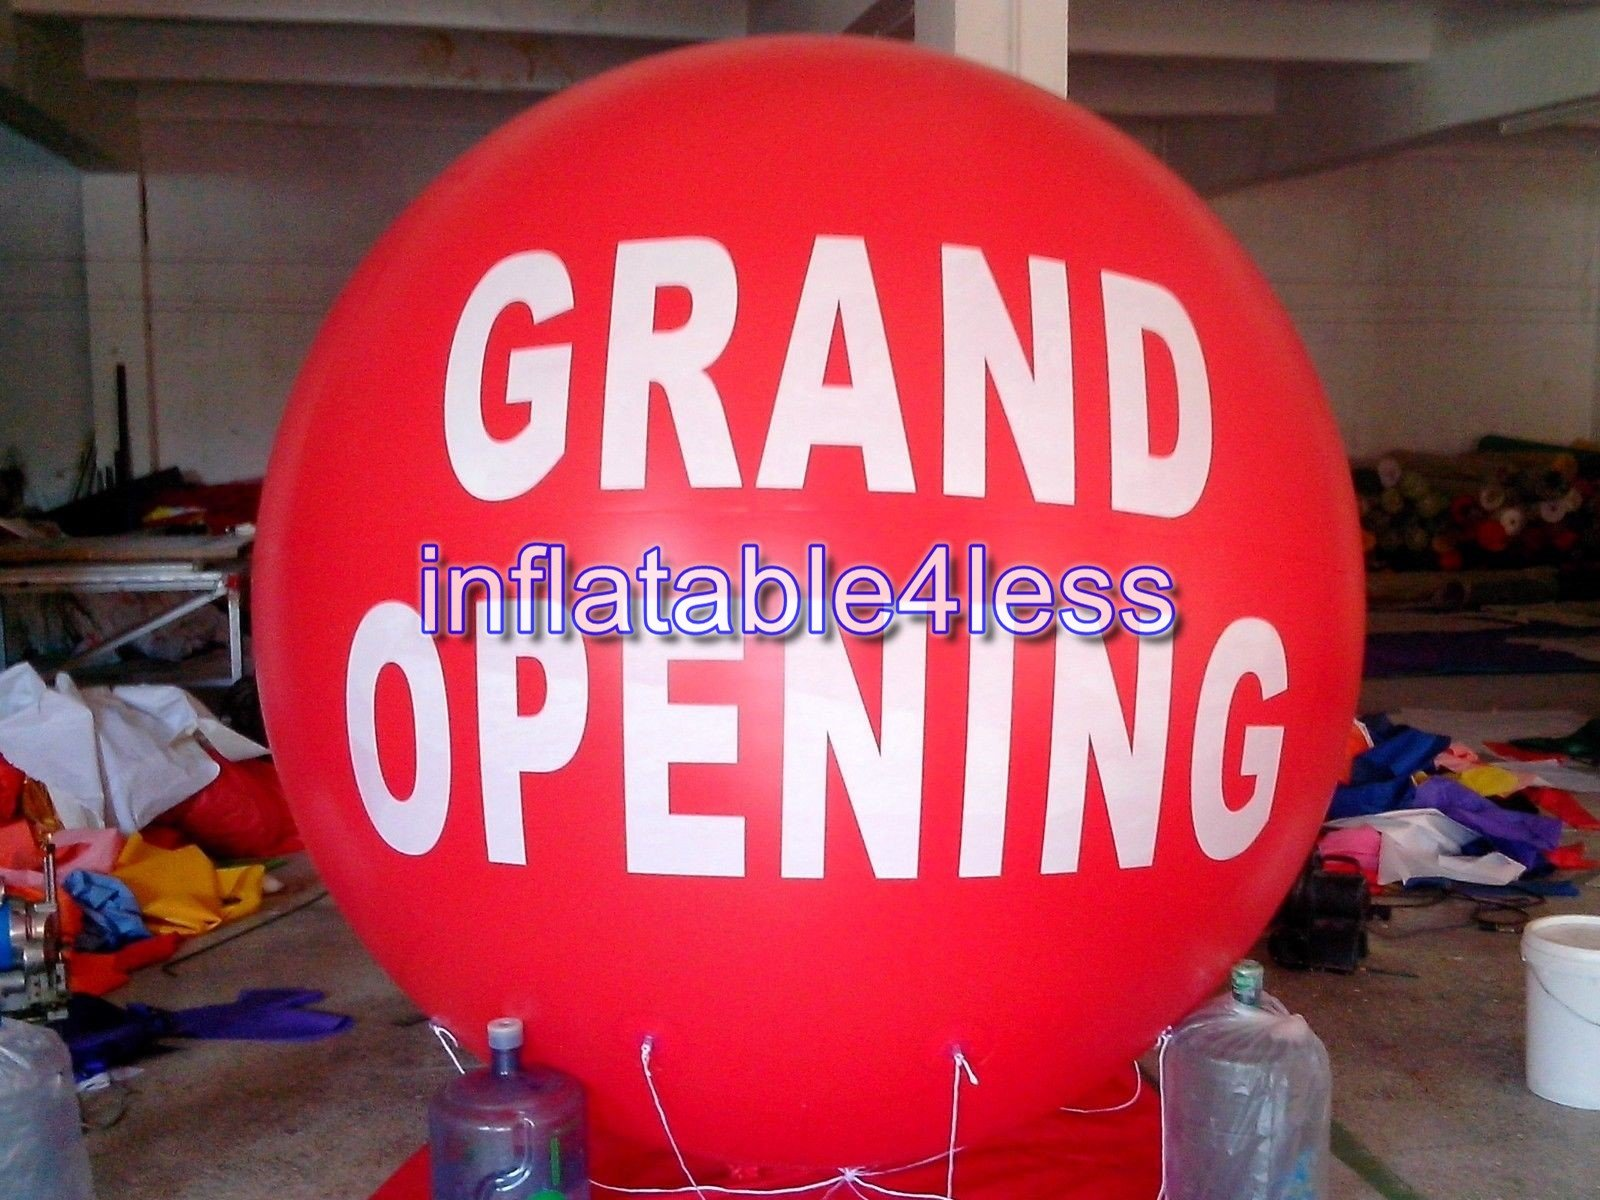 inflatable4less 7ft GRAND OPENING Advertising Round Helium Balloon Ball (Red)